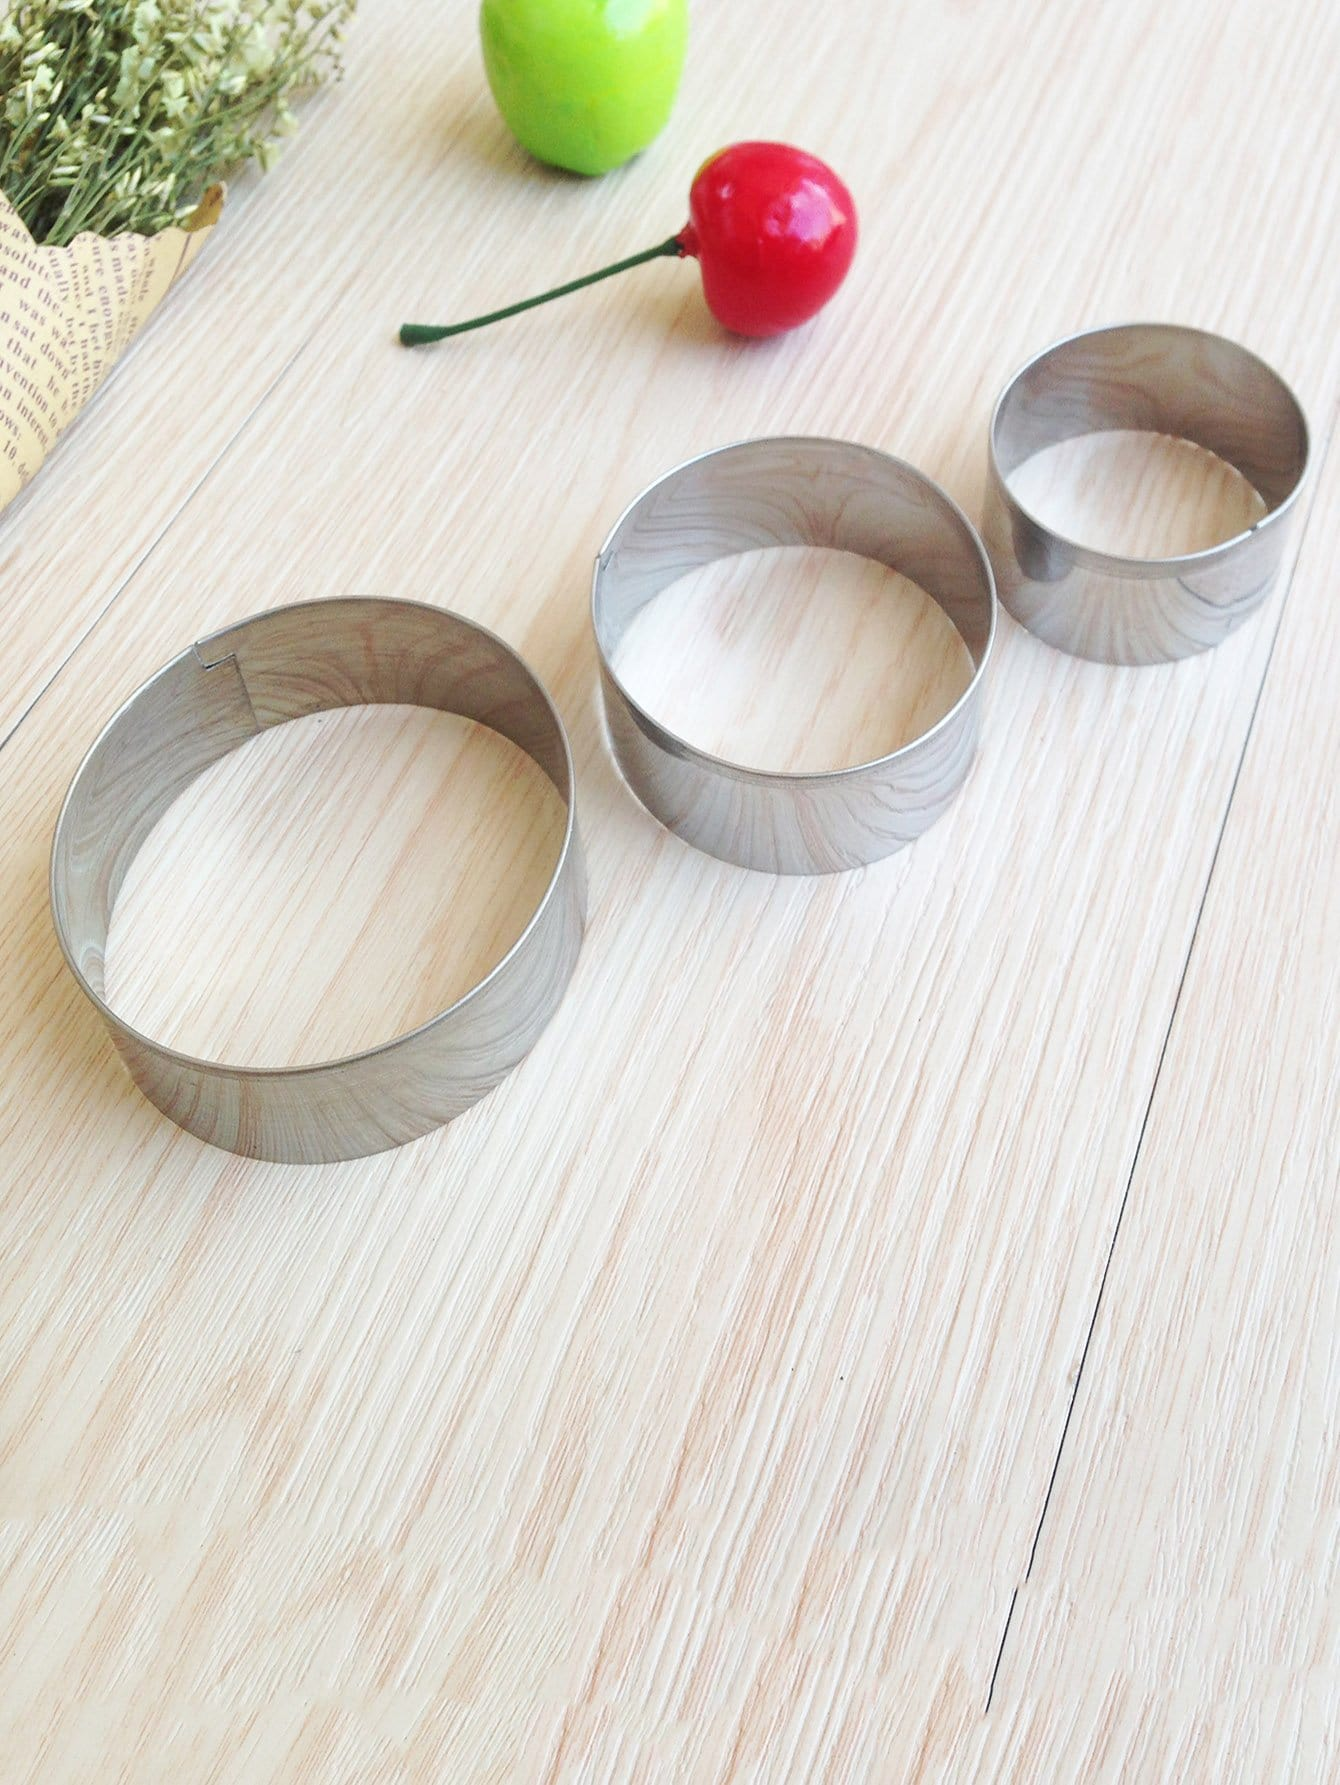 Round Cookie Mold 3pcs dough cutter mold 3pcs